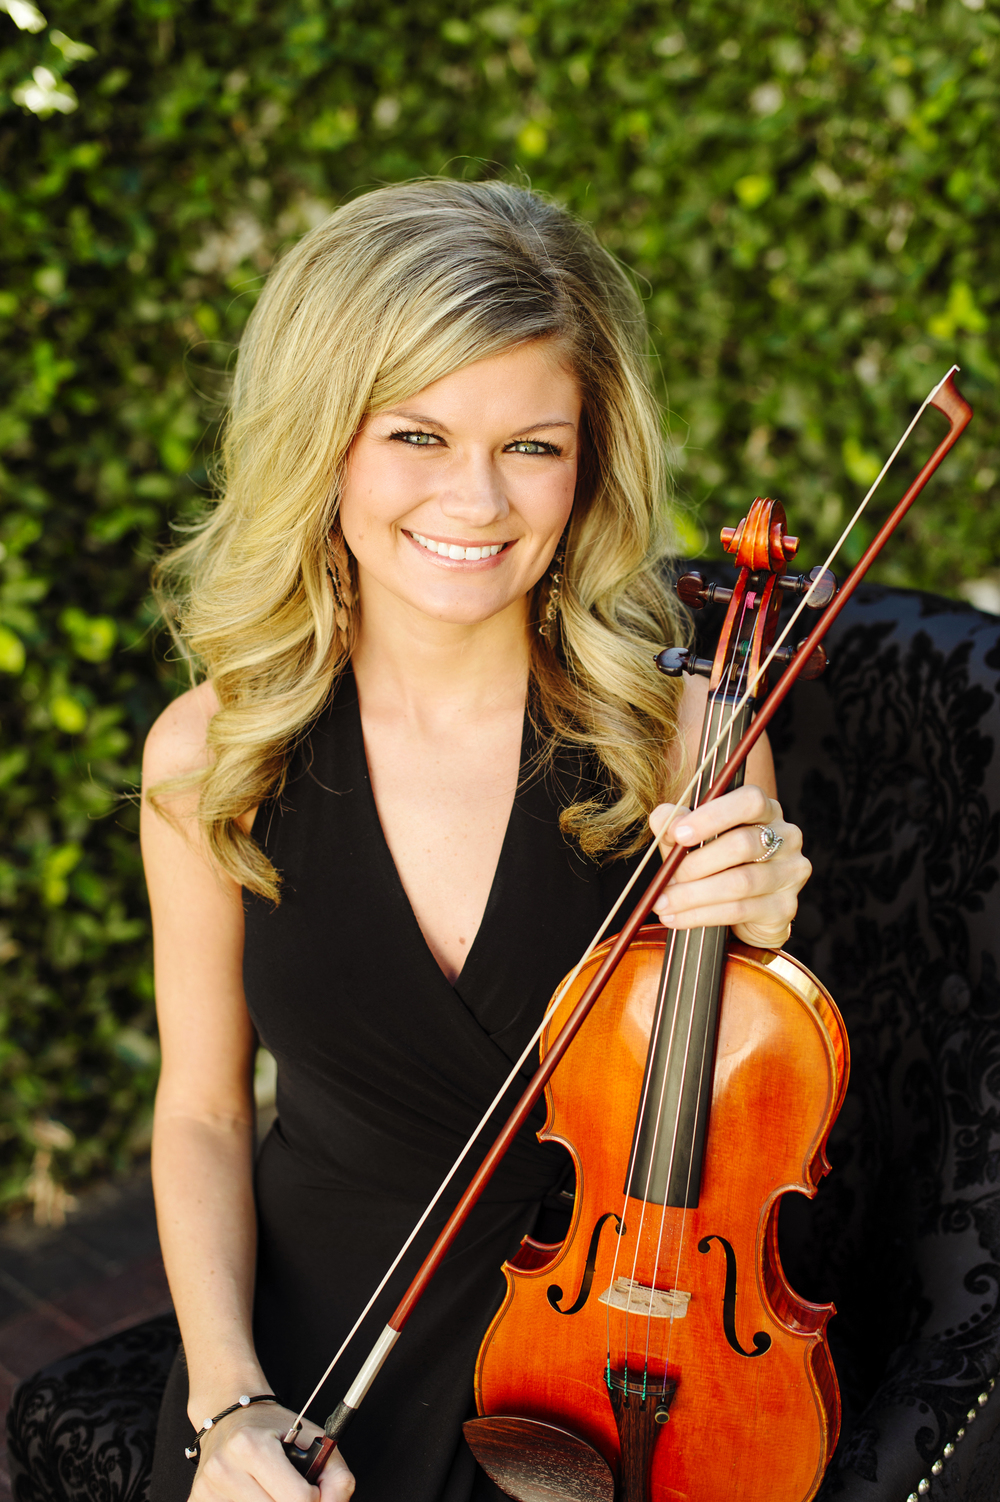 Violinist, Brittany Peterson